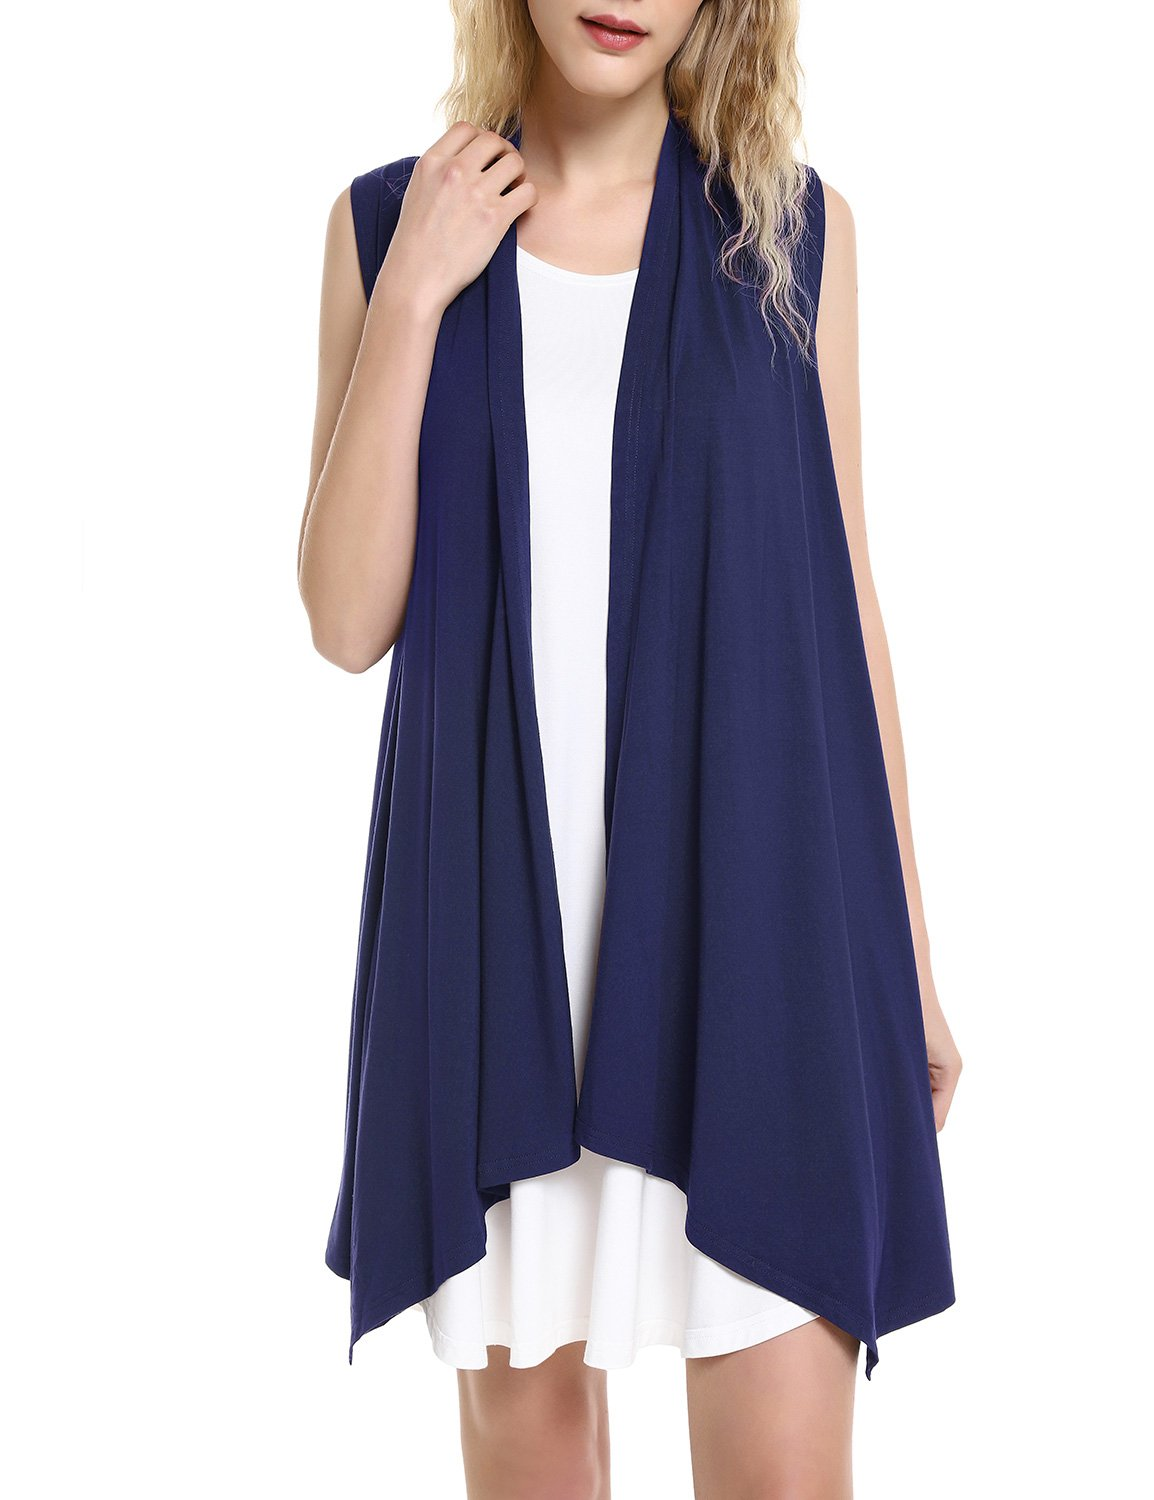 ZAN.STYLE Women's Lightweight Sleeveless Draped Open Front Cardigan Vest Navy Large